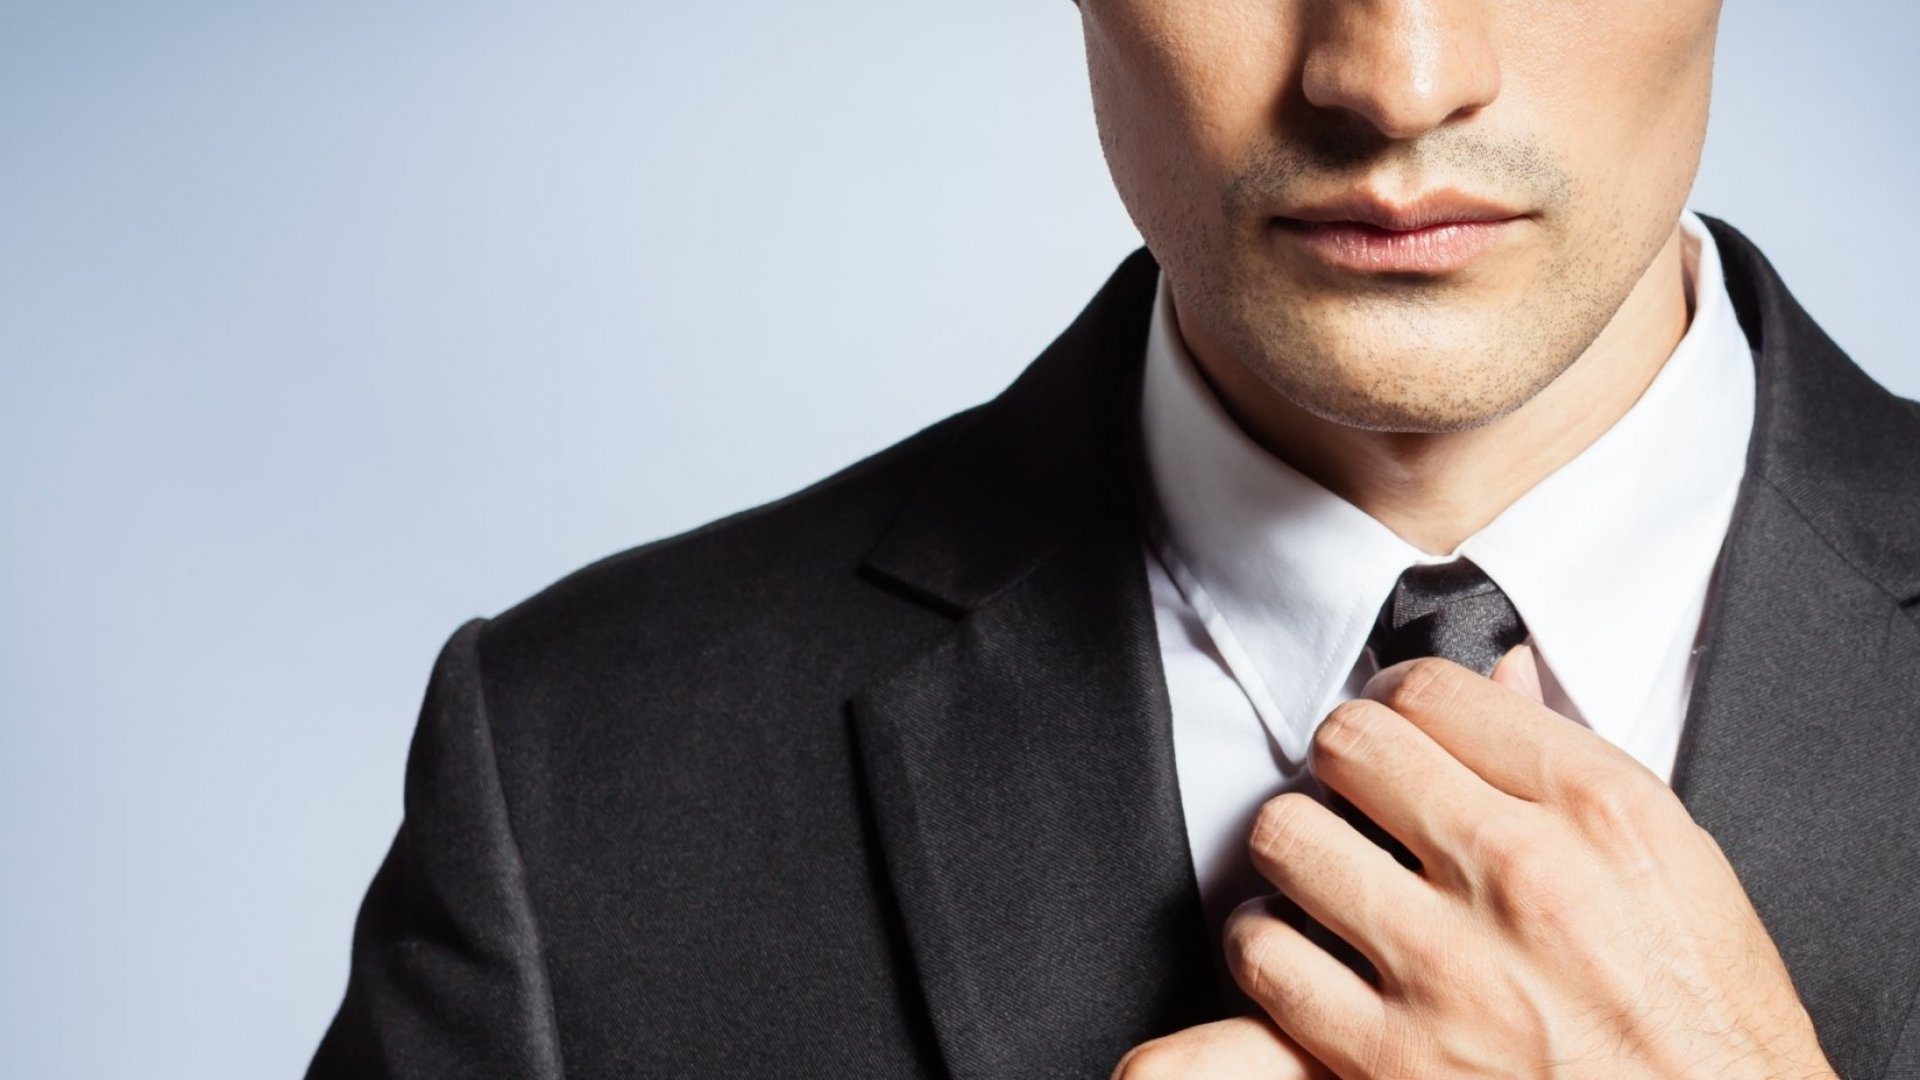 Research Lists 7 Qualities of Successful Leaders (but It's Missing 1 Key Factor)